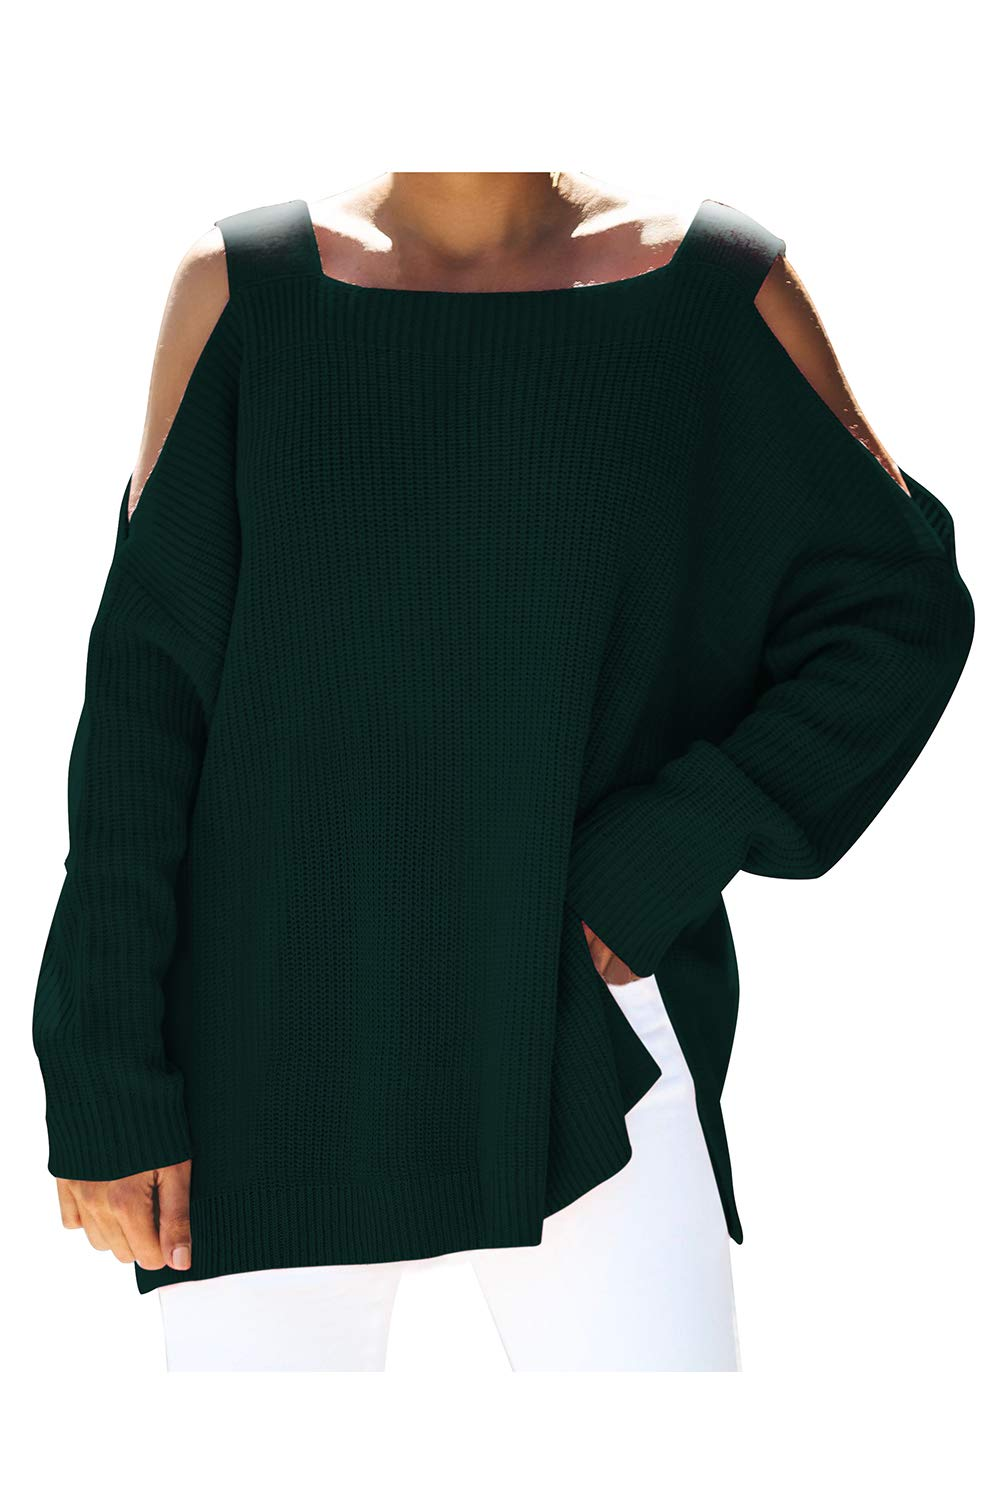 Viottiset Women's Cold Shoulder Pullover Knit Sweater Square Neck Loose Top